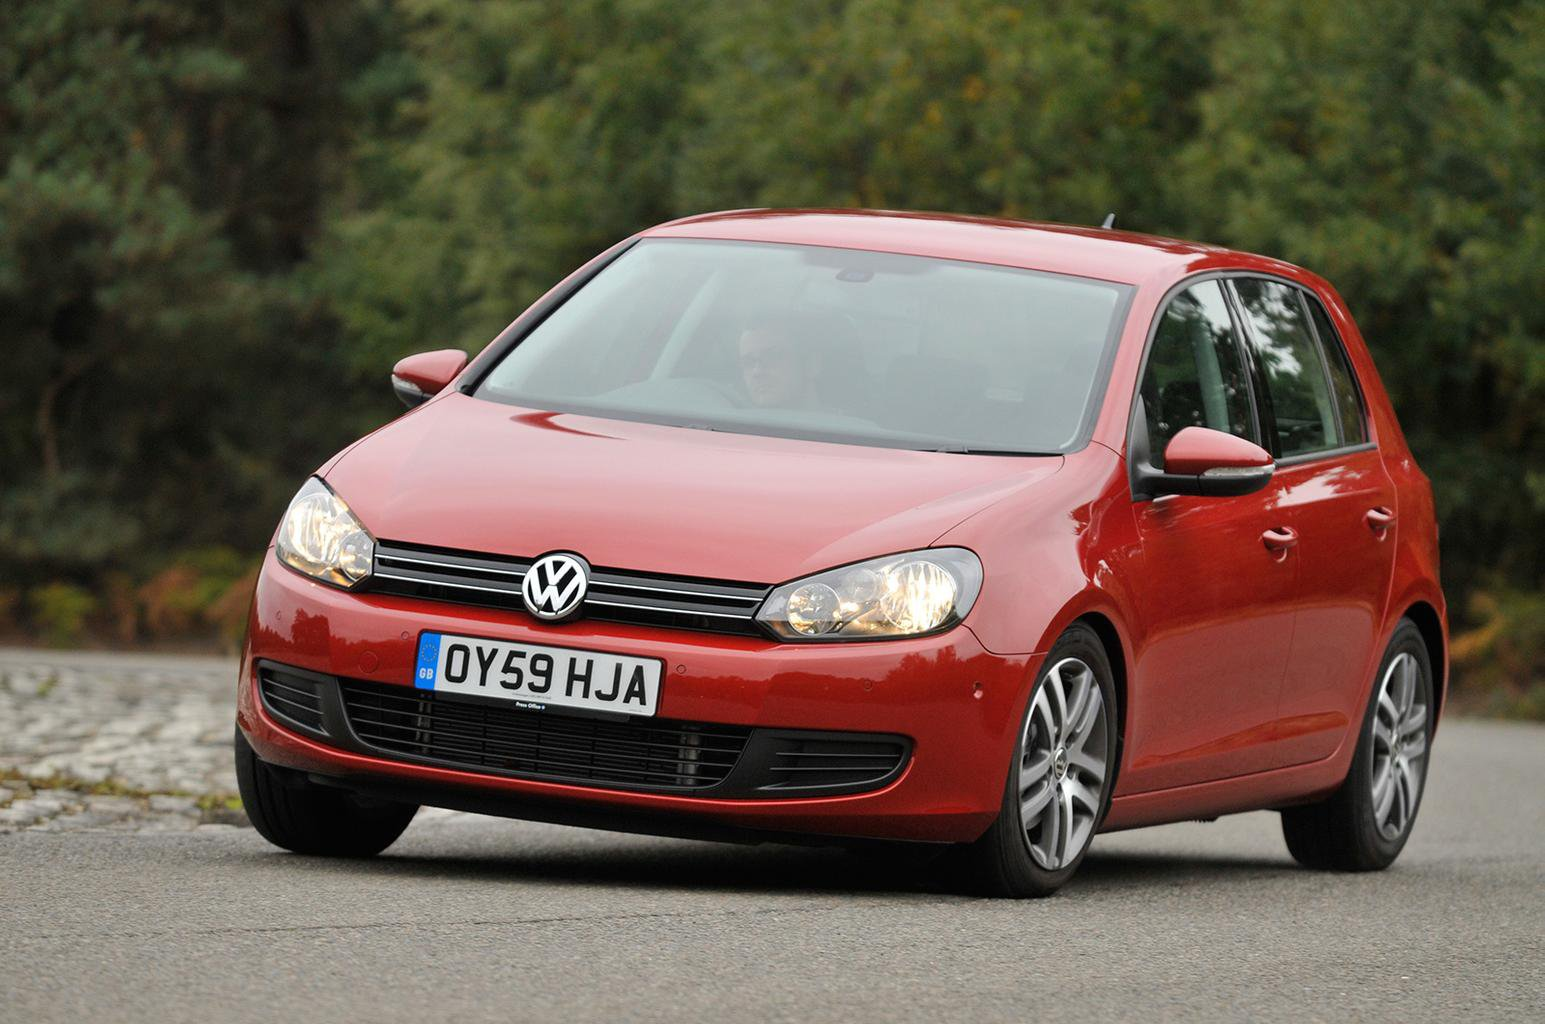 Used car of the week: Volkswagen Golf